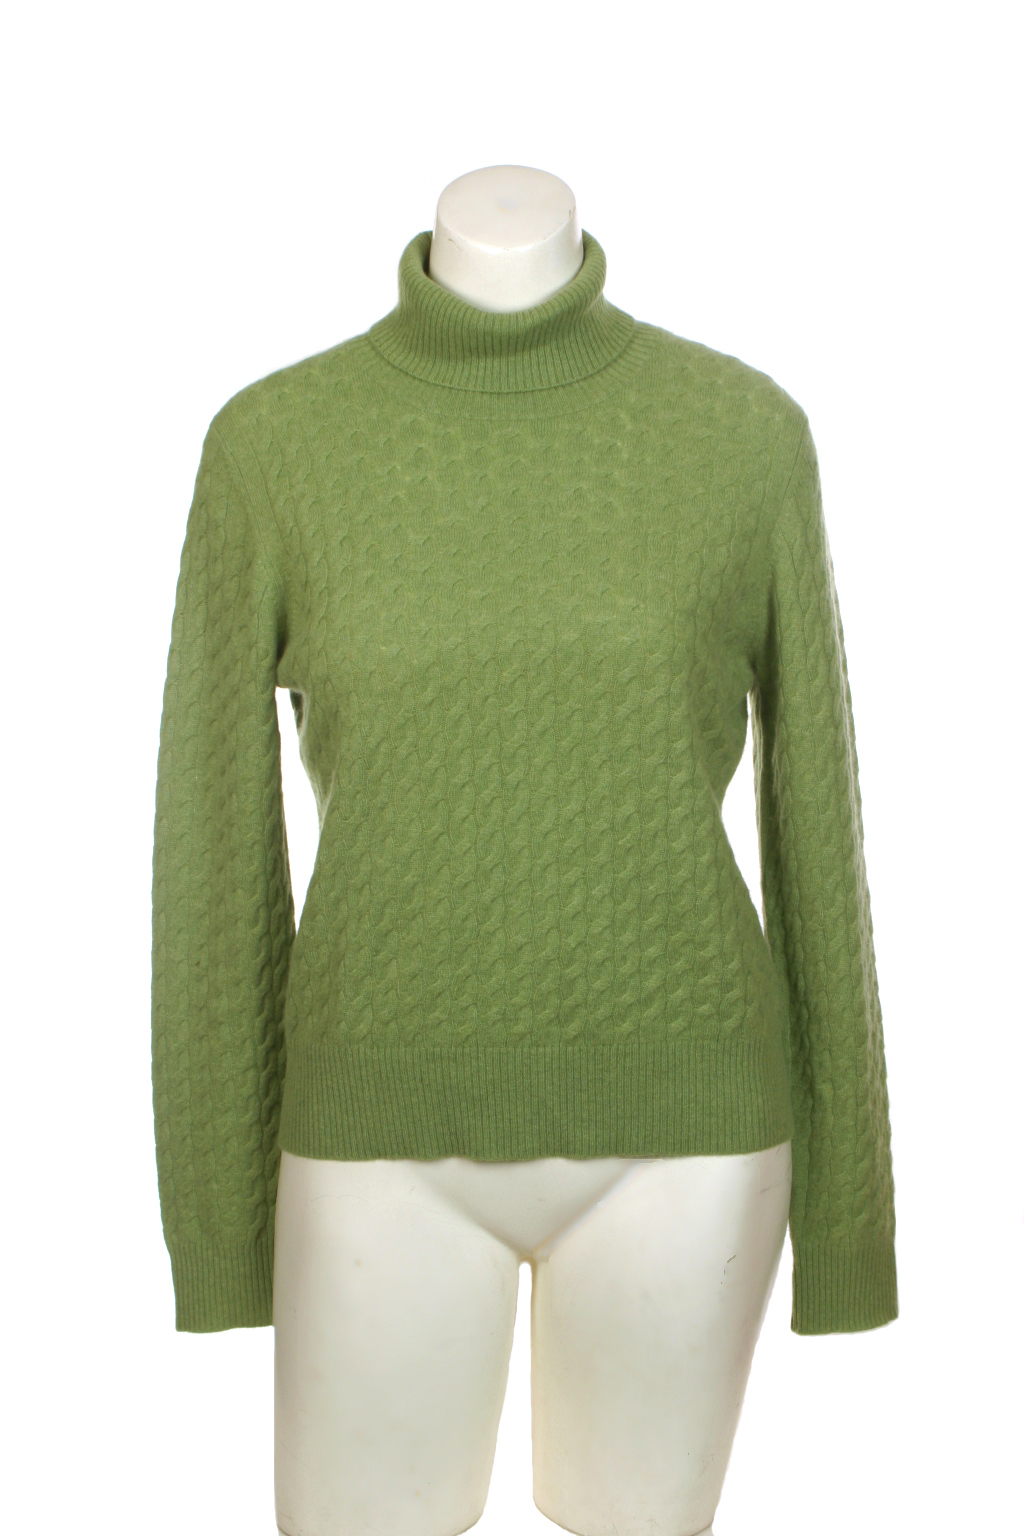 Thrift Shop Sweater Second Hand Womens Geneva Green Cashmere XL Sweater